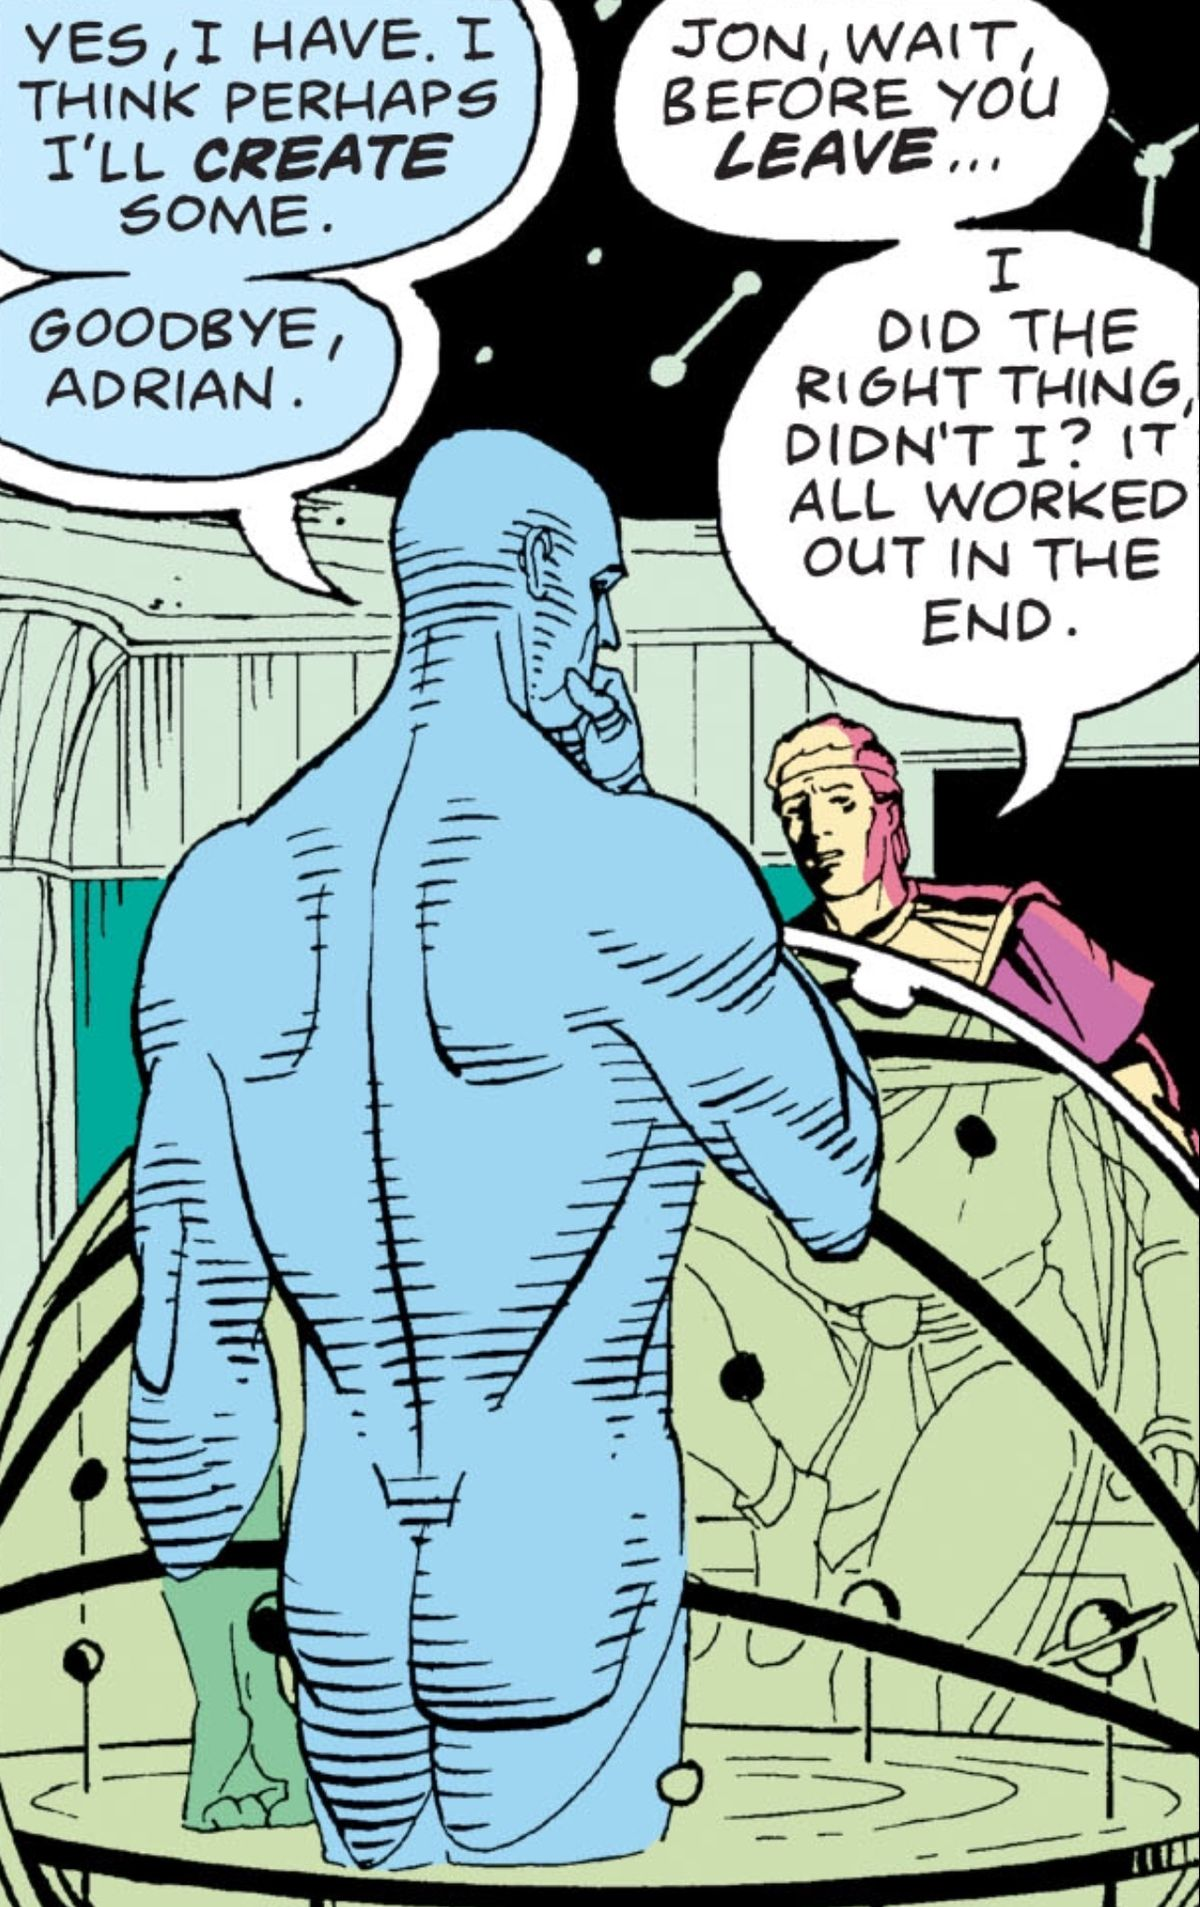 Doctor Manhattan says that he think's he'll create some human life and says goodbye to Ozymandias, in Watchmen, DC Comics (1986).